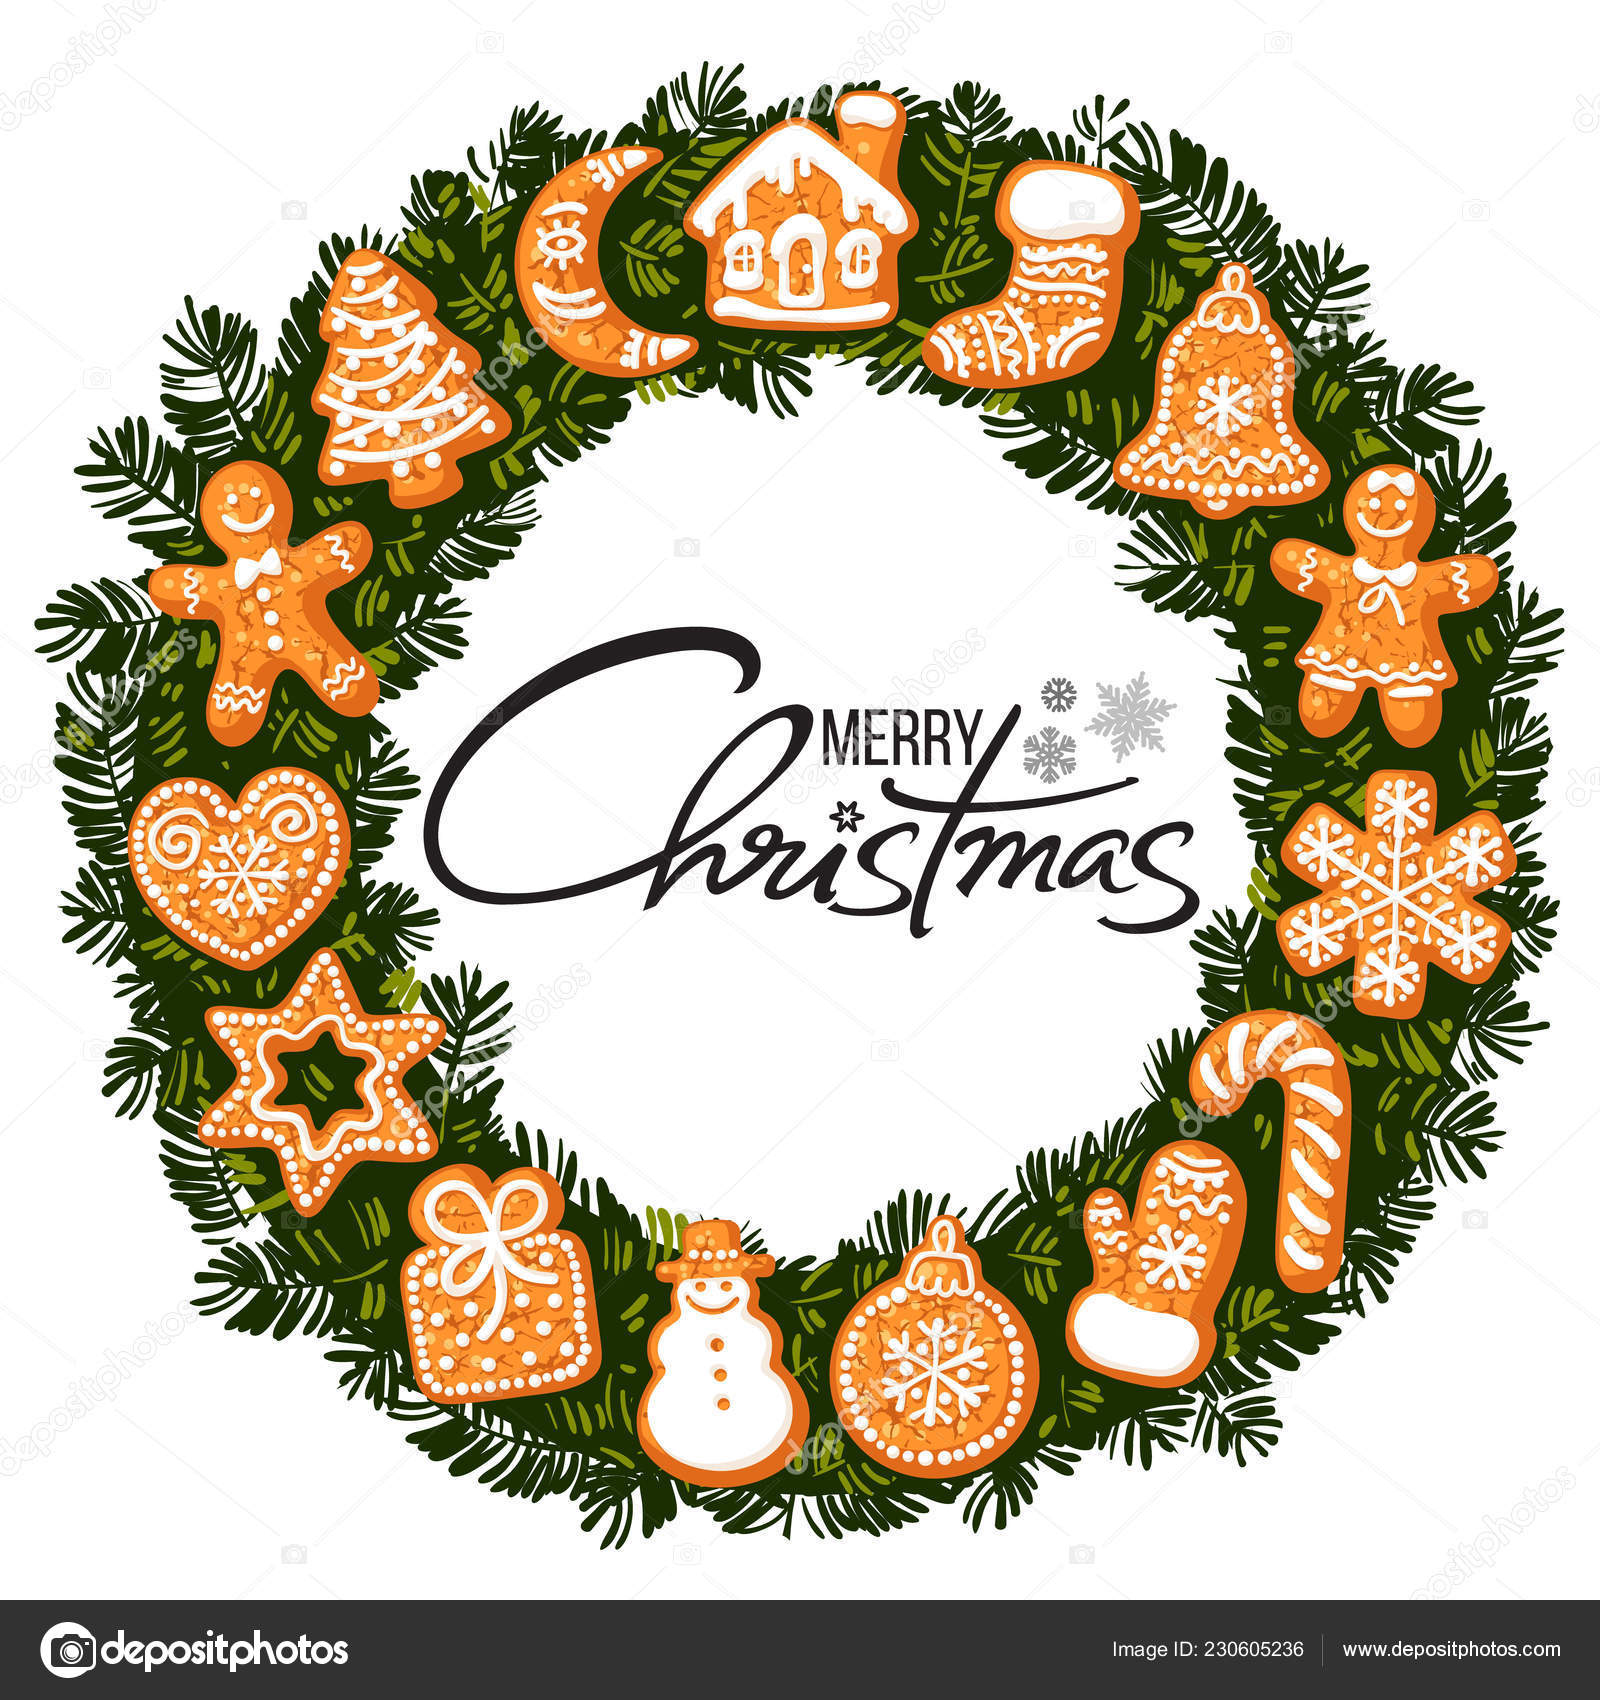 Merry Christmas Lettering In Center Of Wreath With Gingerbread